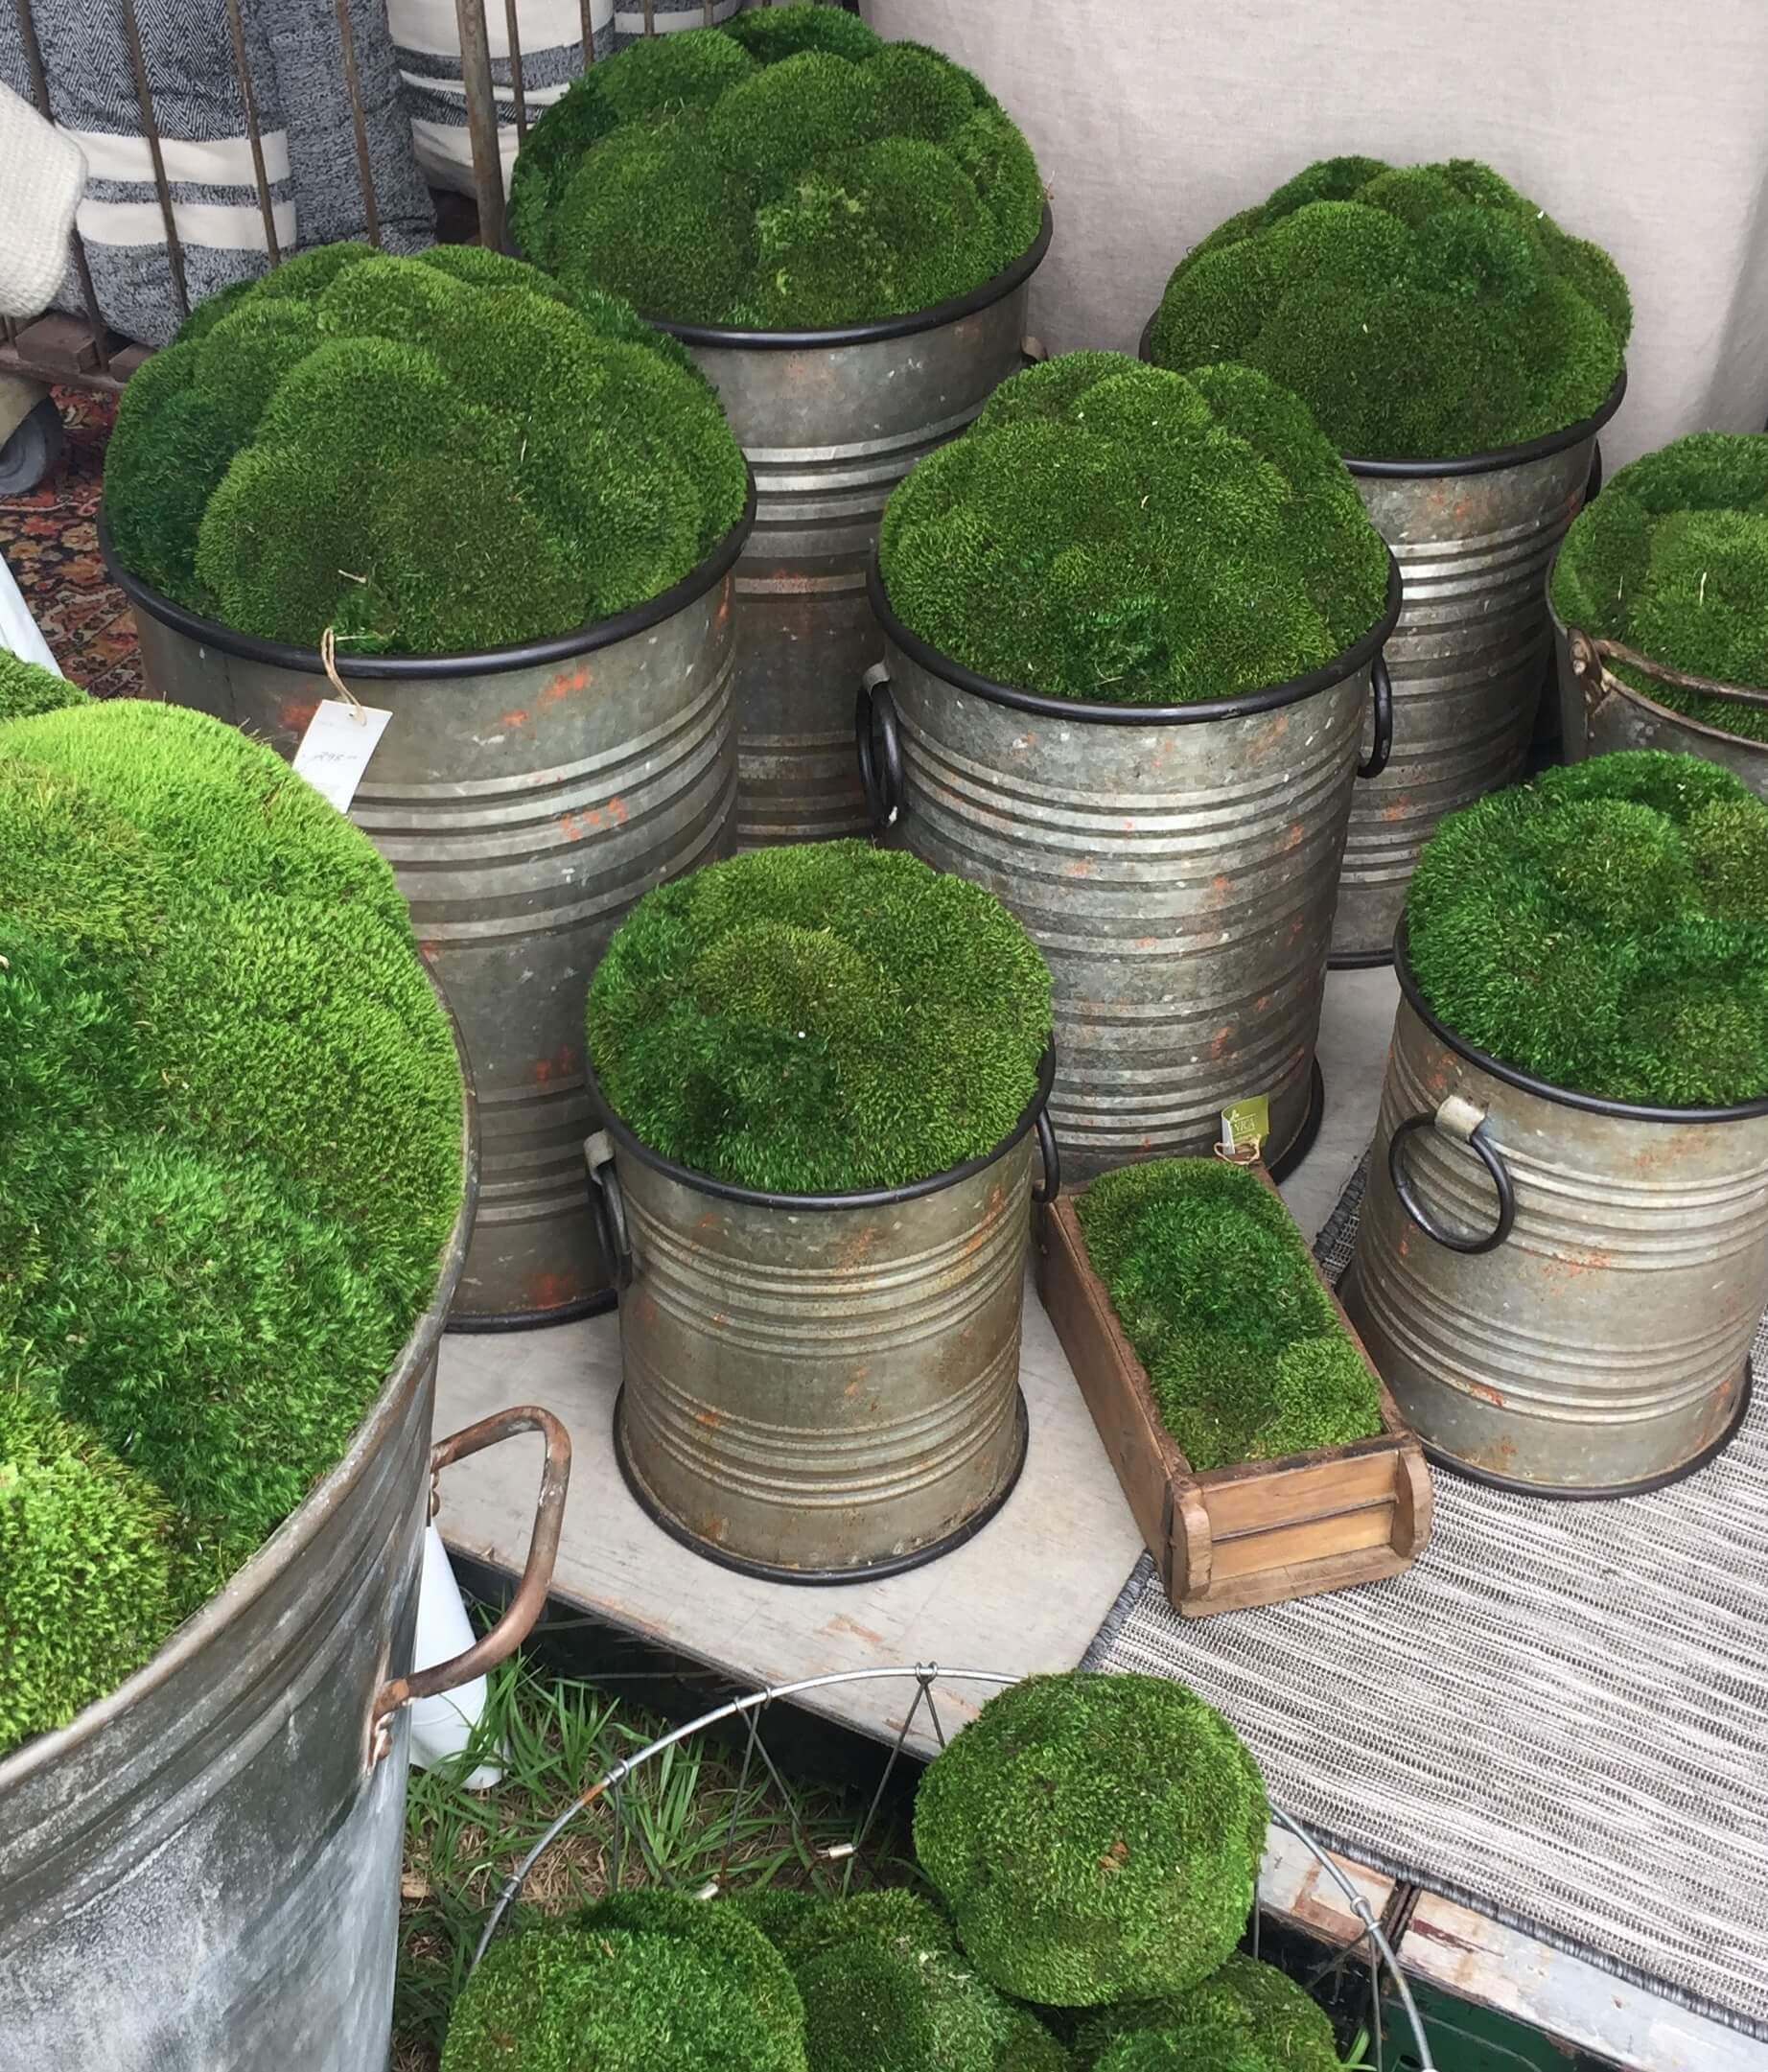 Moss filled planters from Round Top, TX #roundtop #planters #moss